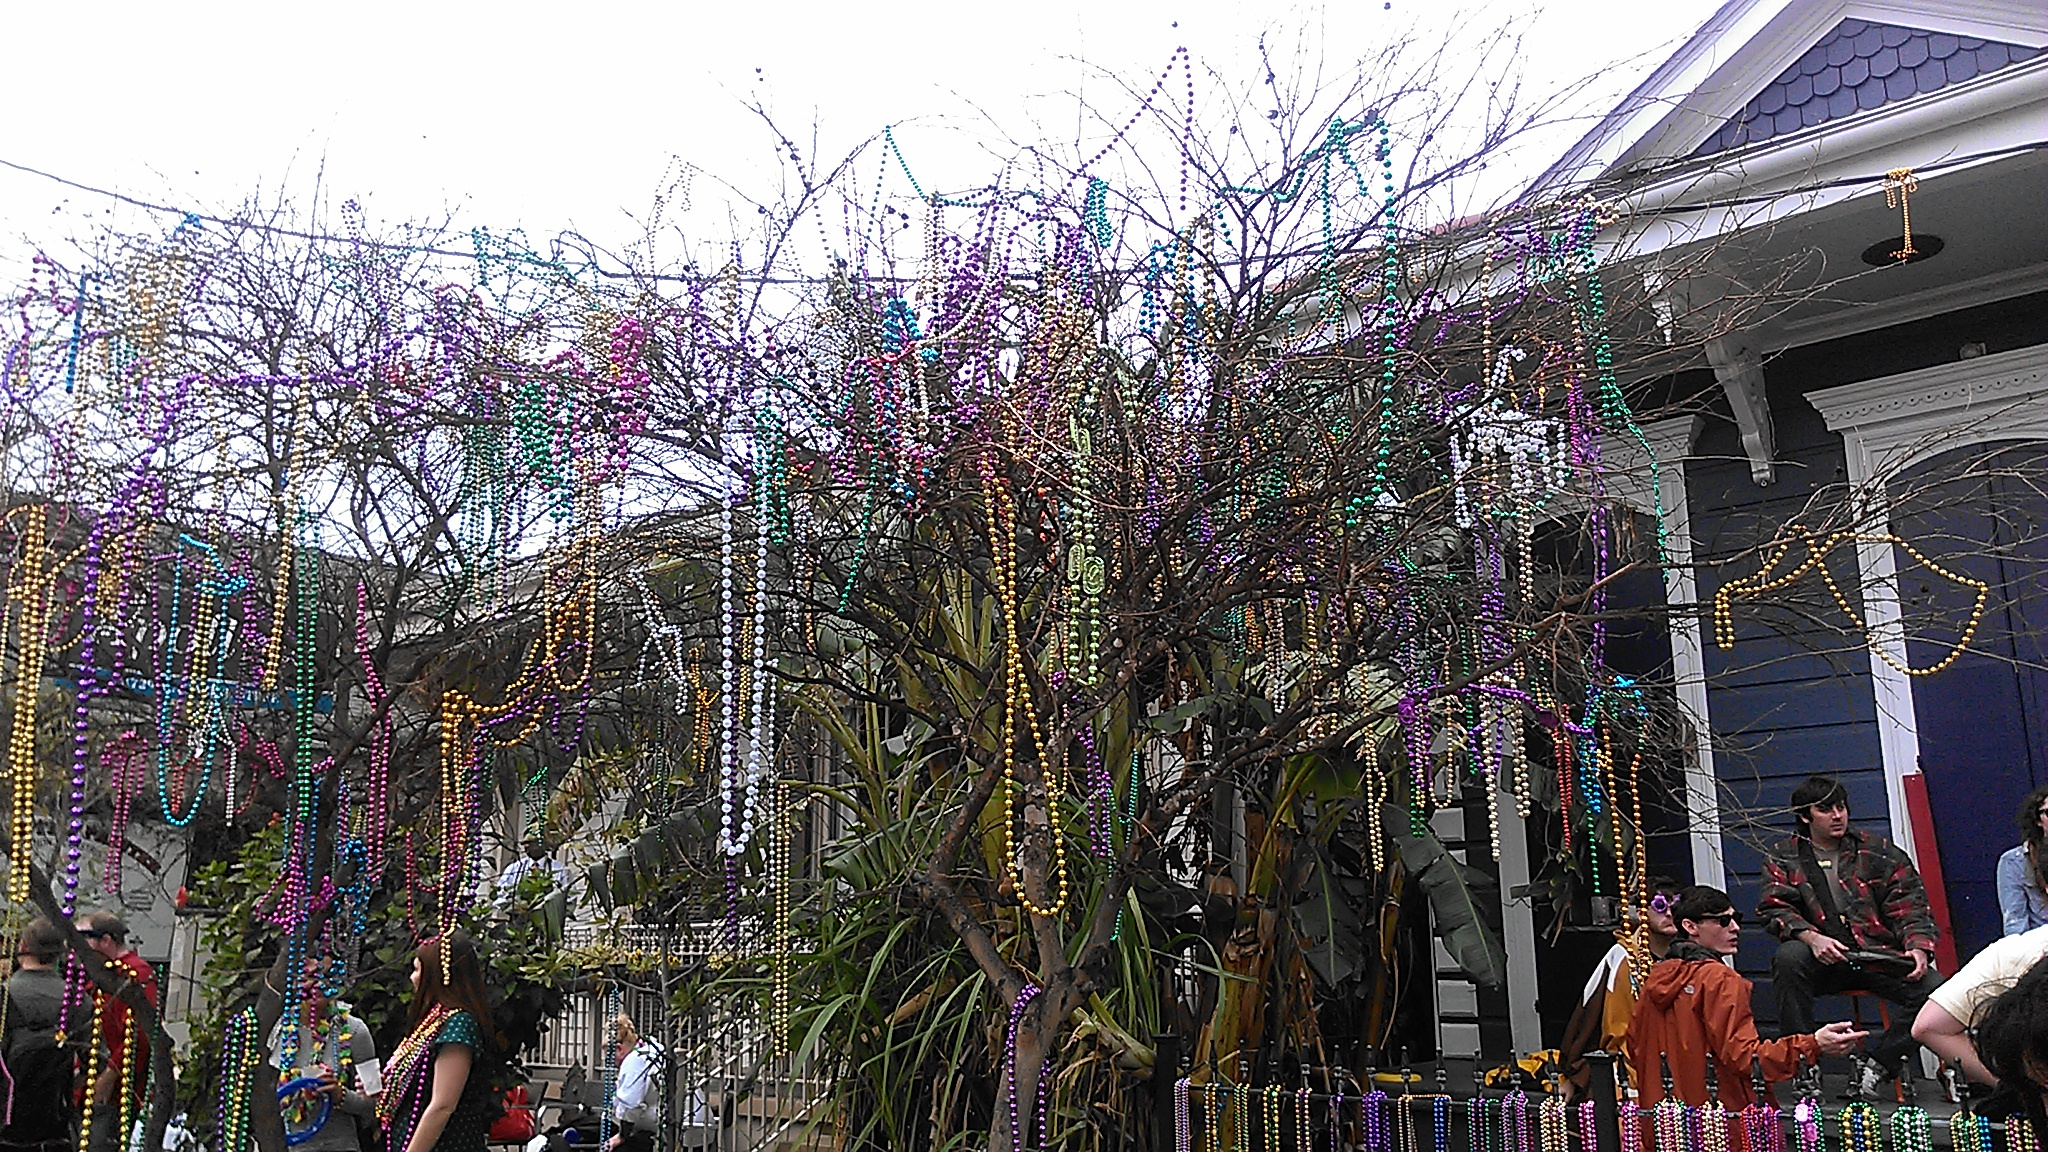 You Can Decorate Your Trees With Beads After The Parades Kids And Merrymakers Tossed